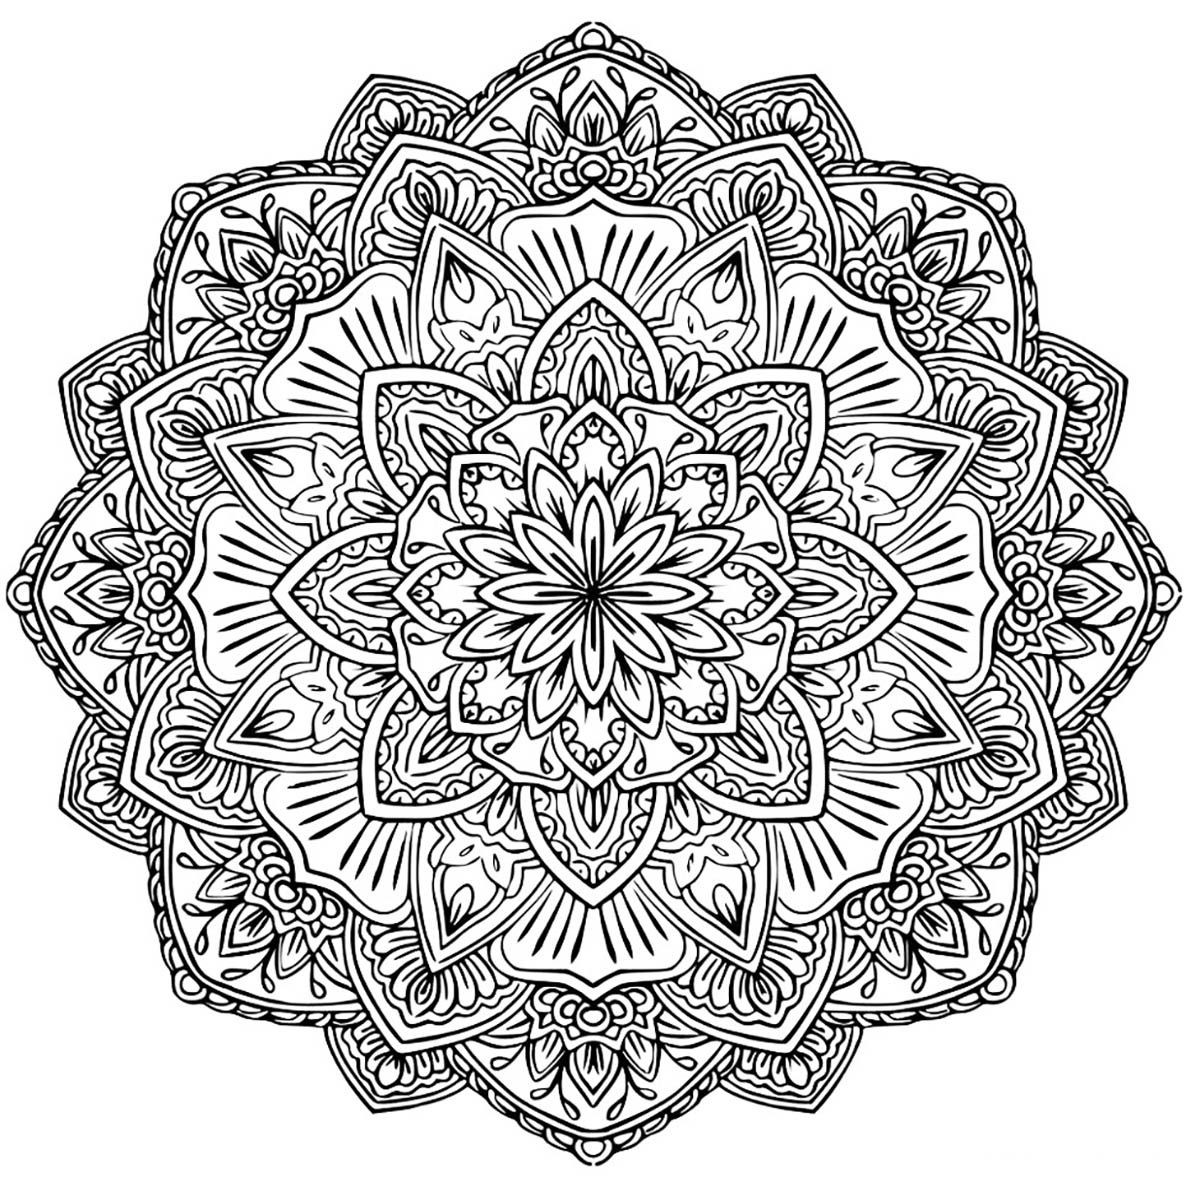 Mandala To Download In Pdf 1from The Gallery Mandalas Mandala Kleurplaten Kleurboek Kleurplaten